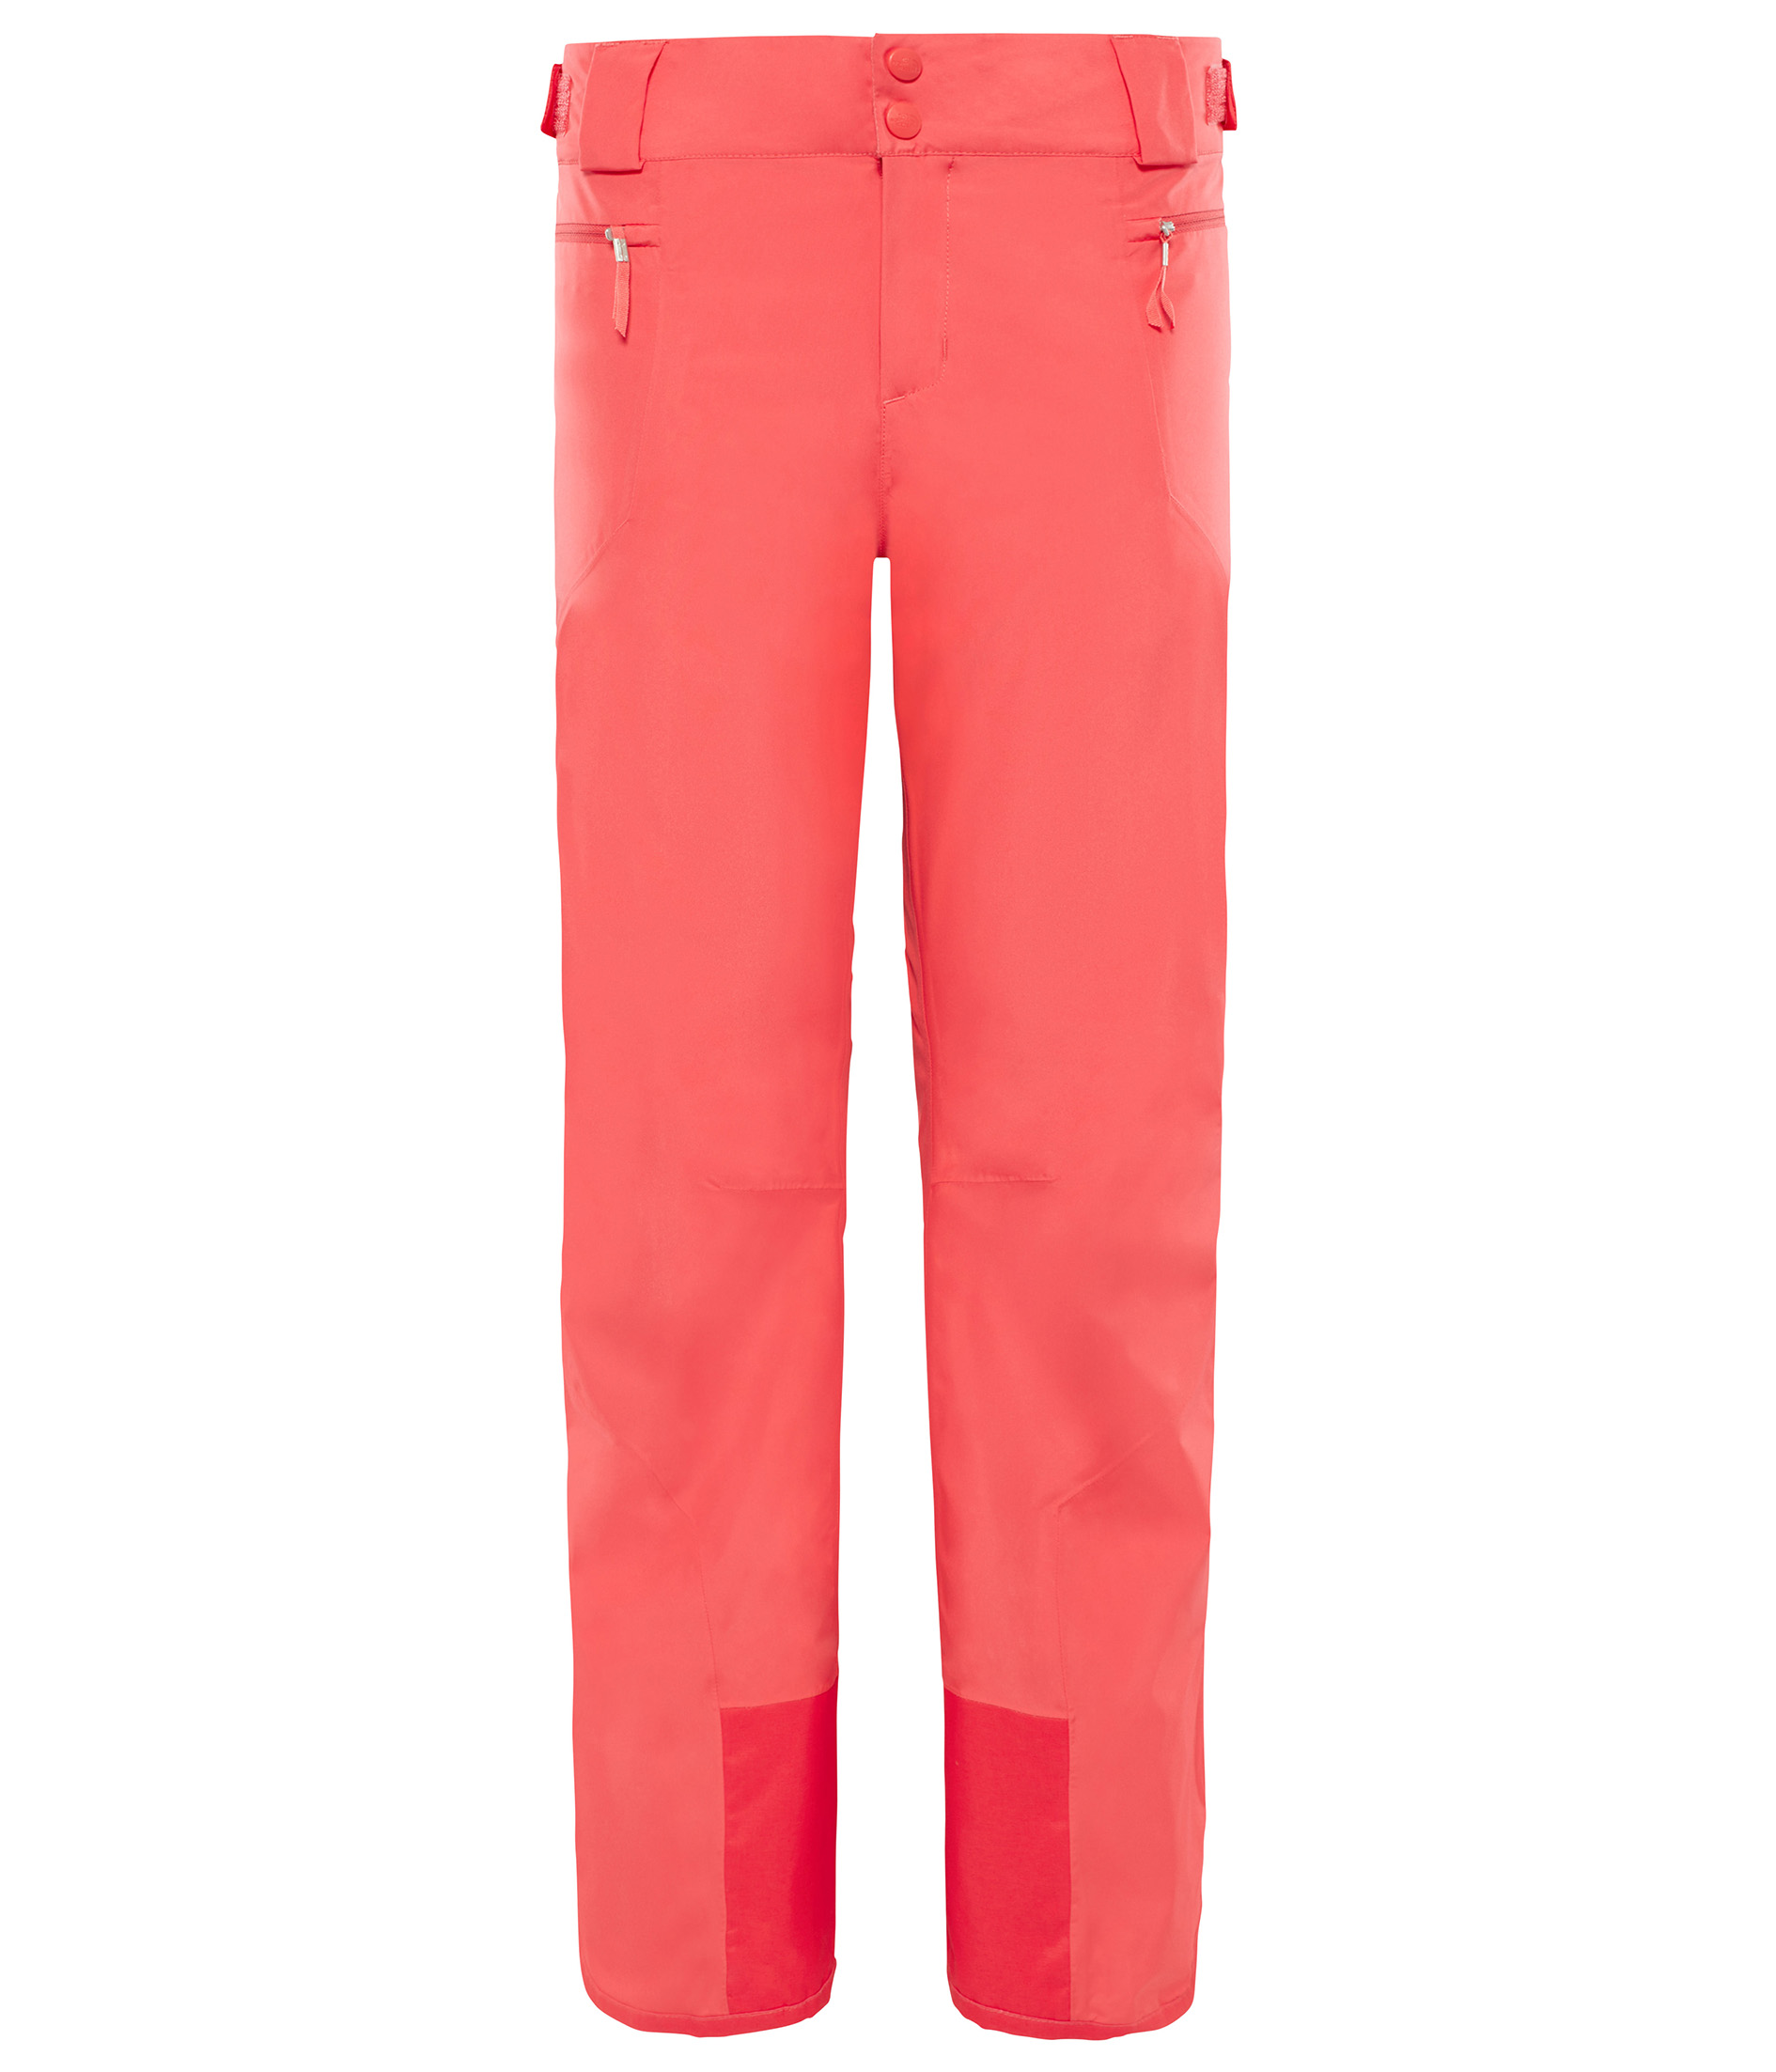 THE NORTH FACE W CHAVANNE PANT - EU ONLY, TEABERRY PINK velikost: M